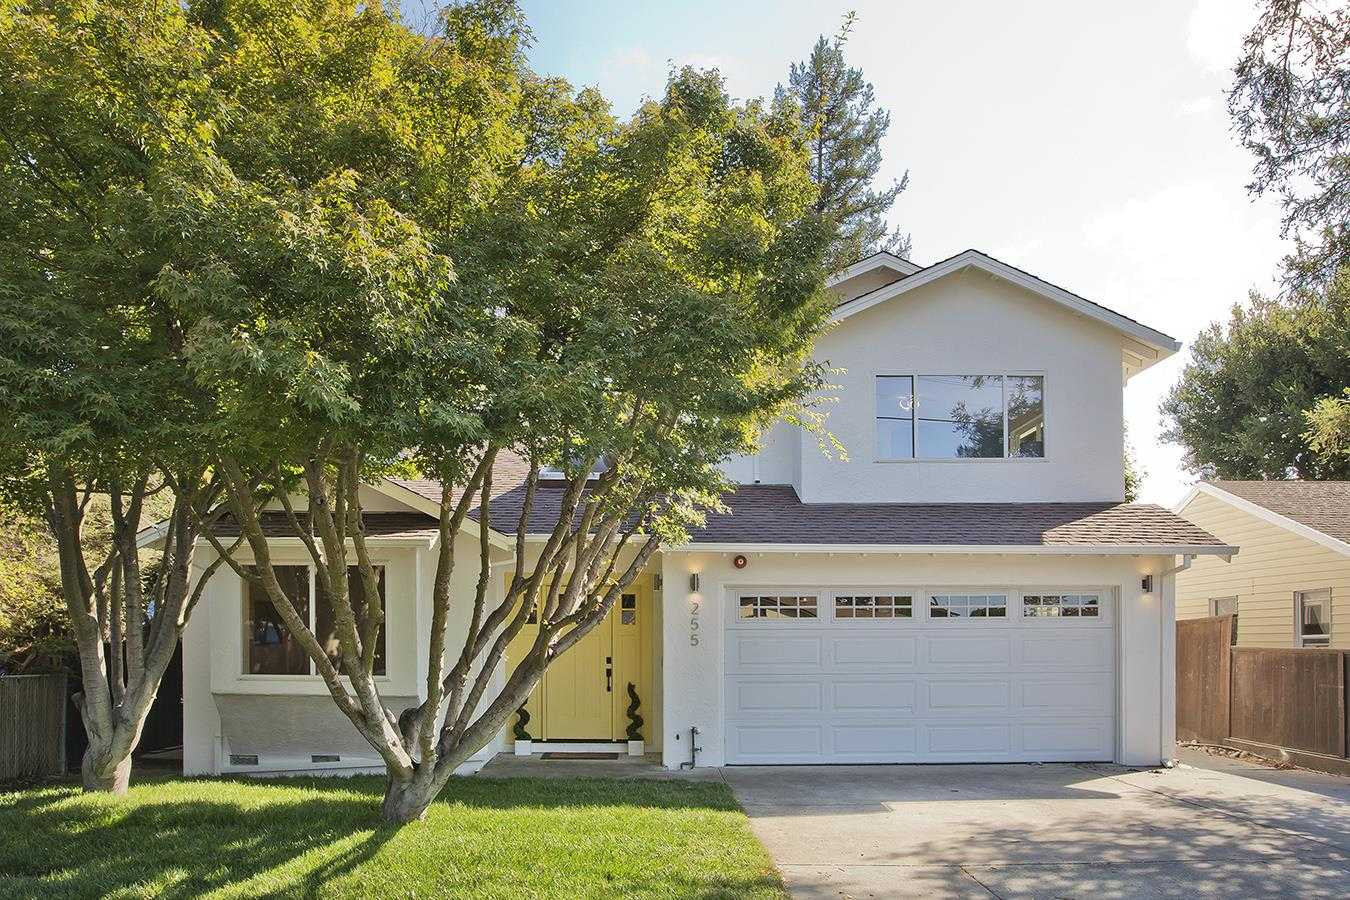 $1,950,000 - 6Br/3Ba -  for Sale in Redwood City